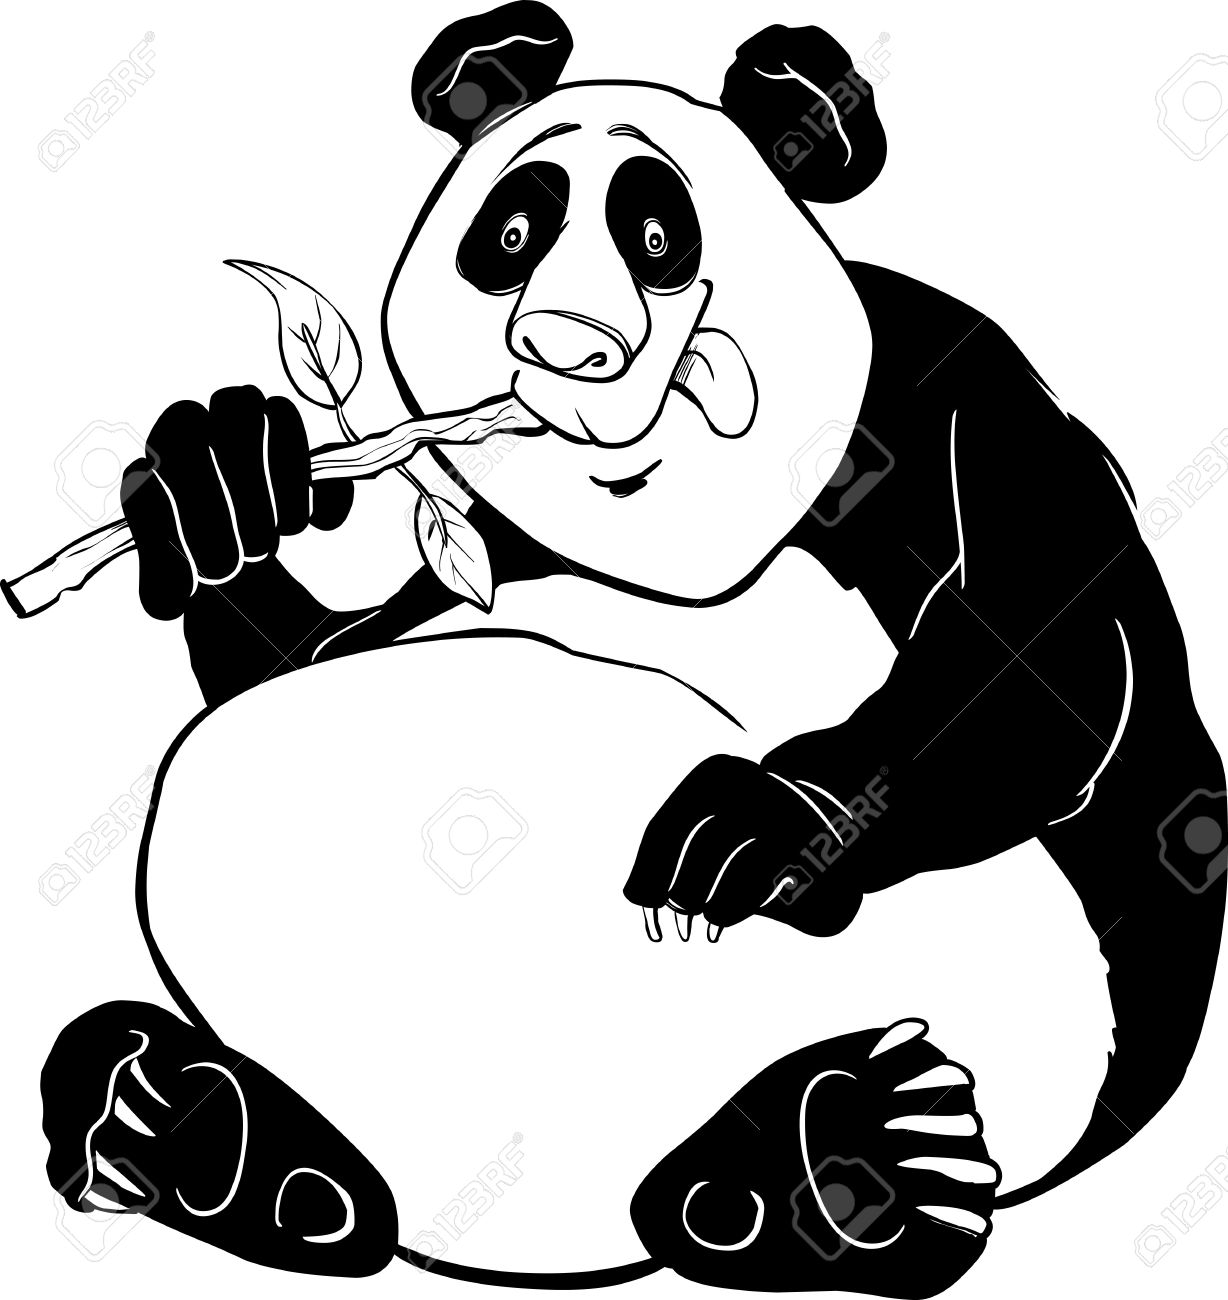 funny giant panda bear coloring page royalty free cliparts